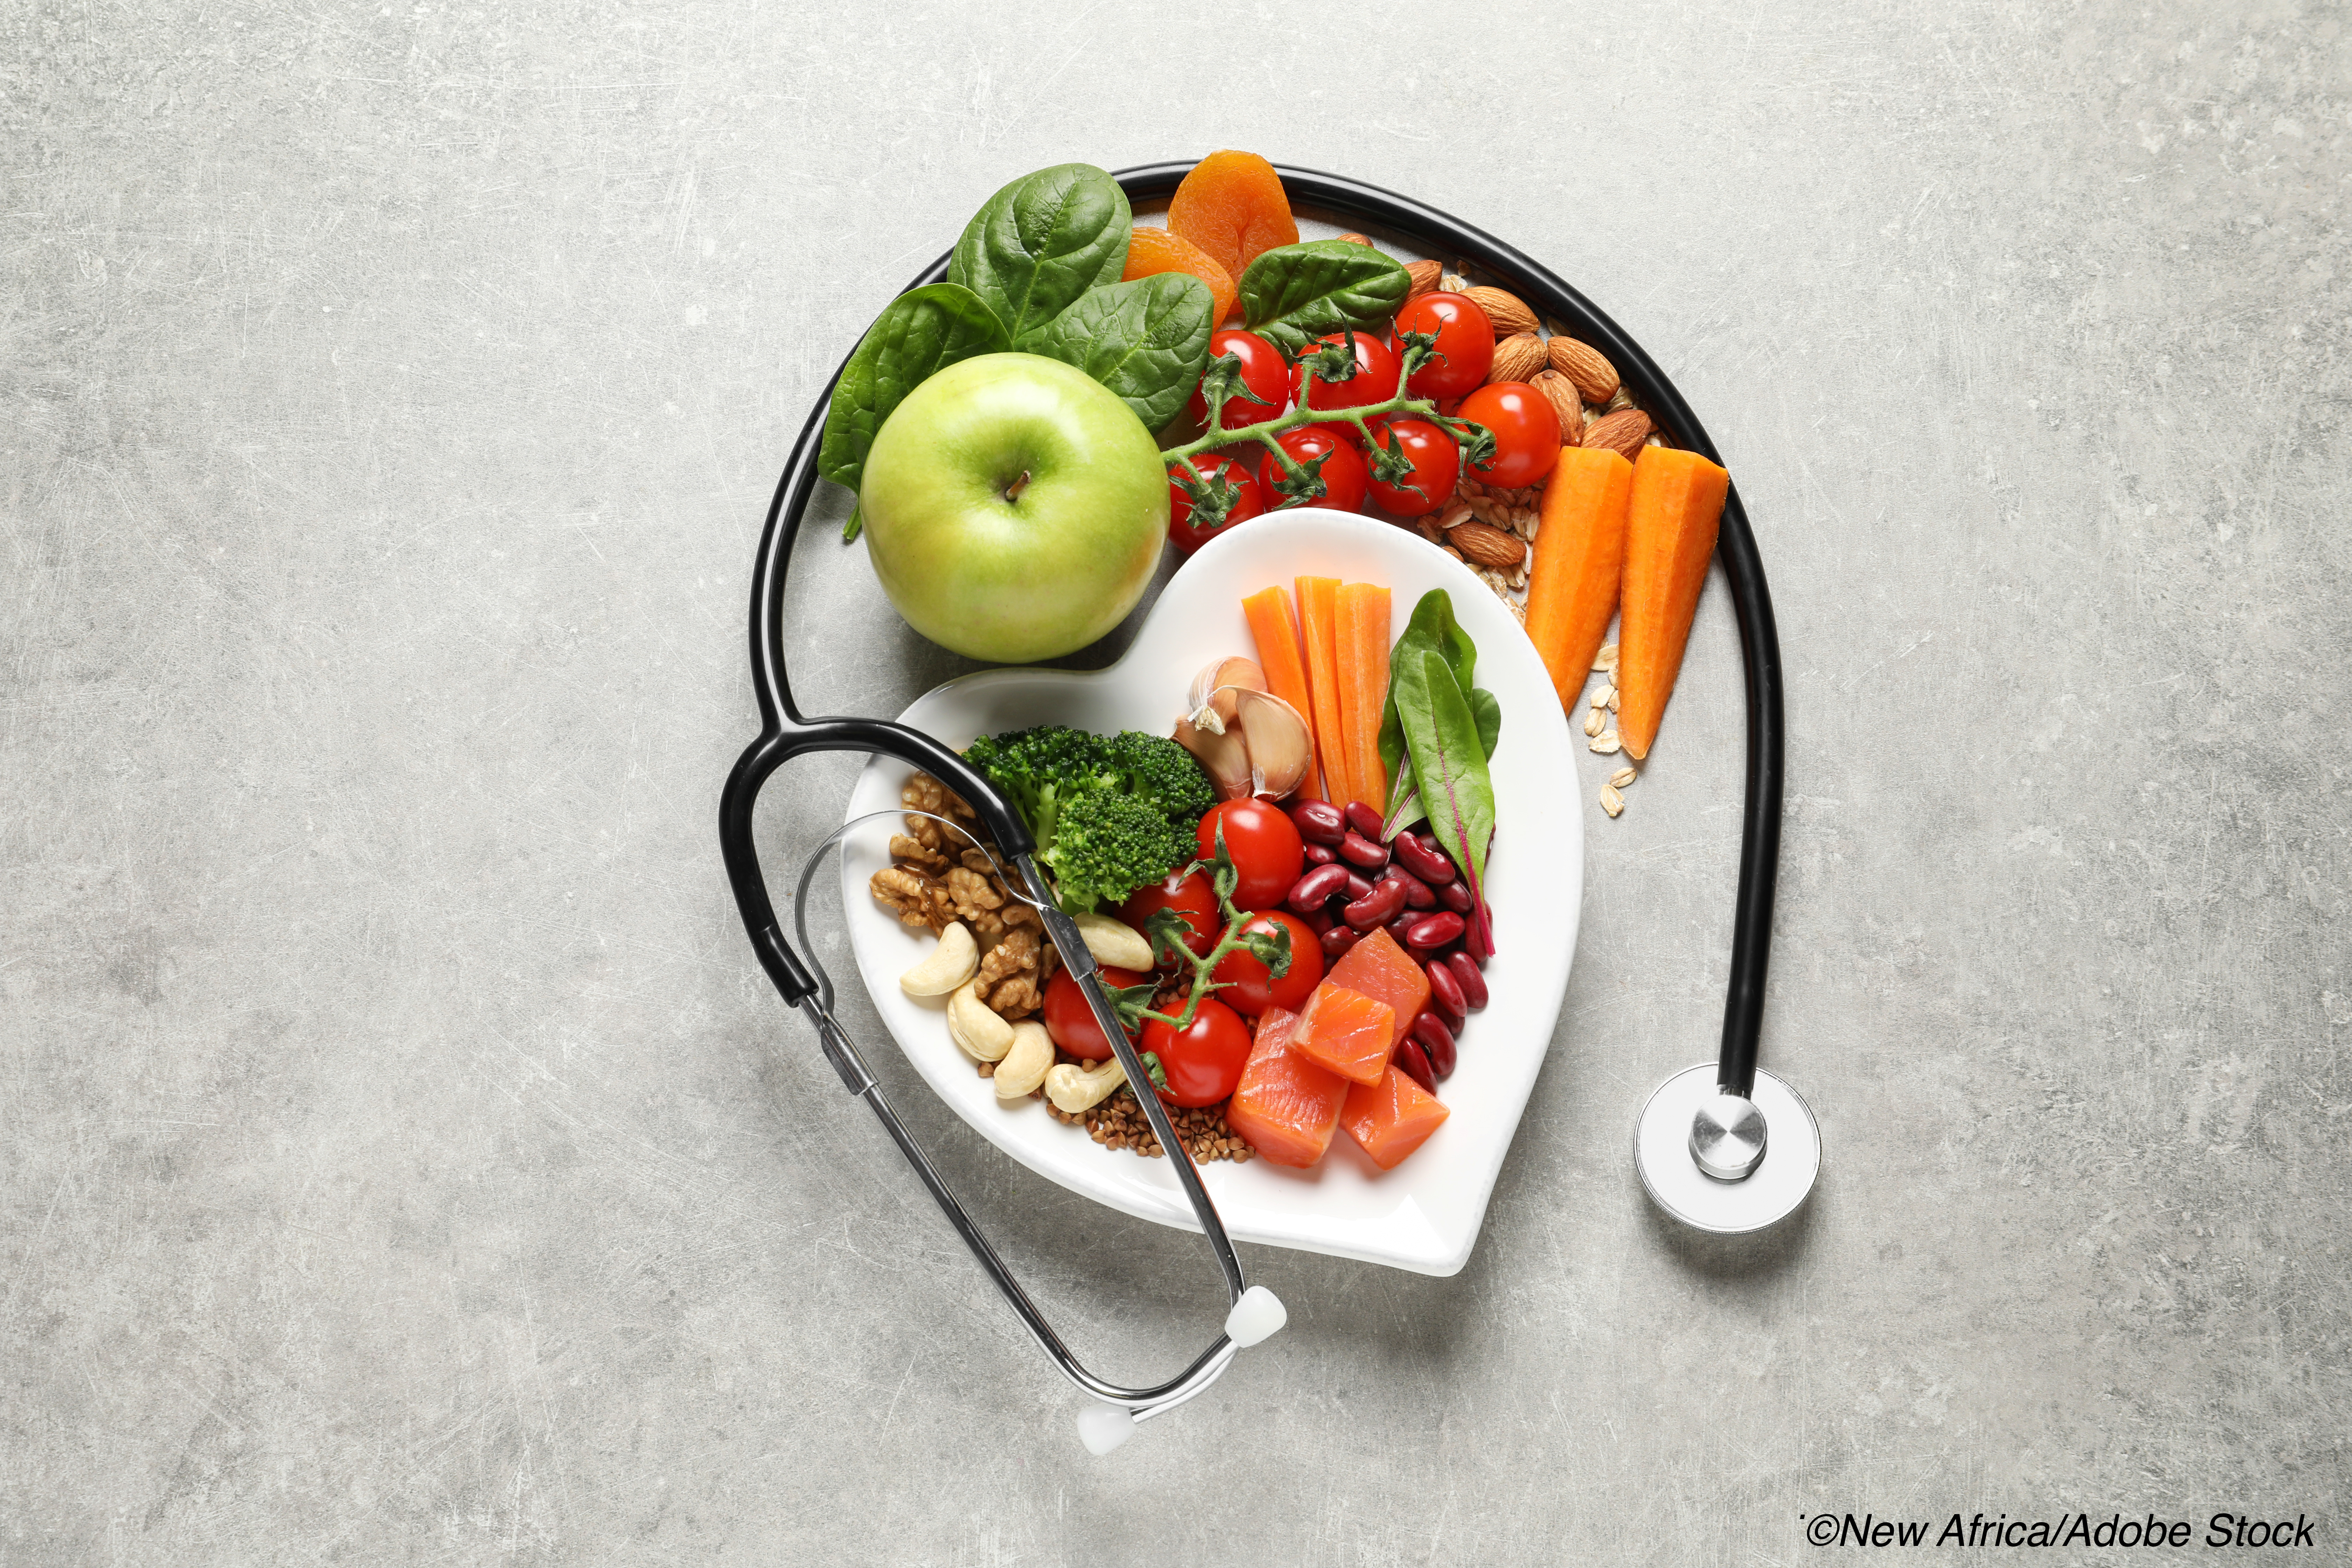 Diet and CVD: Can a Healthy Diet Reduce Risks of CVD?